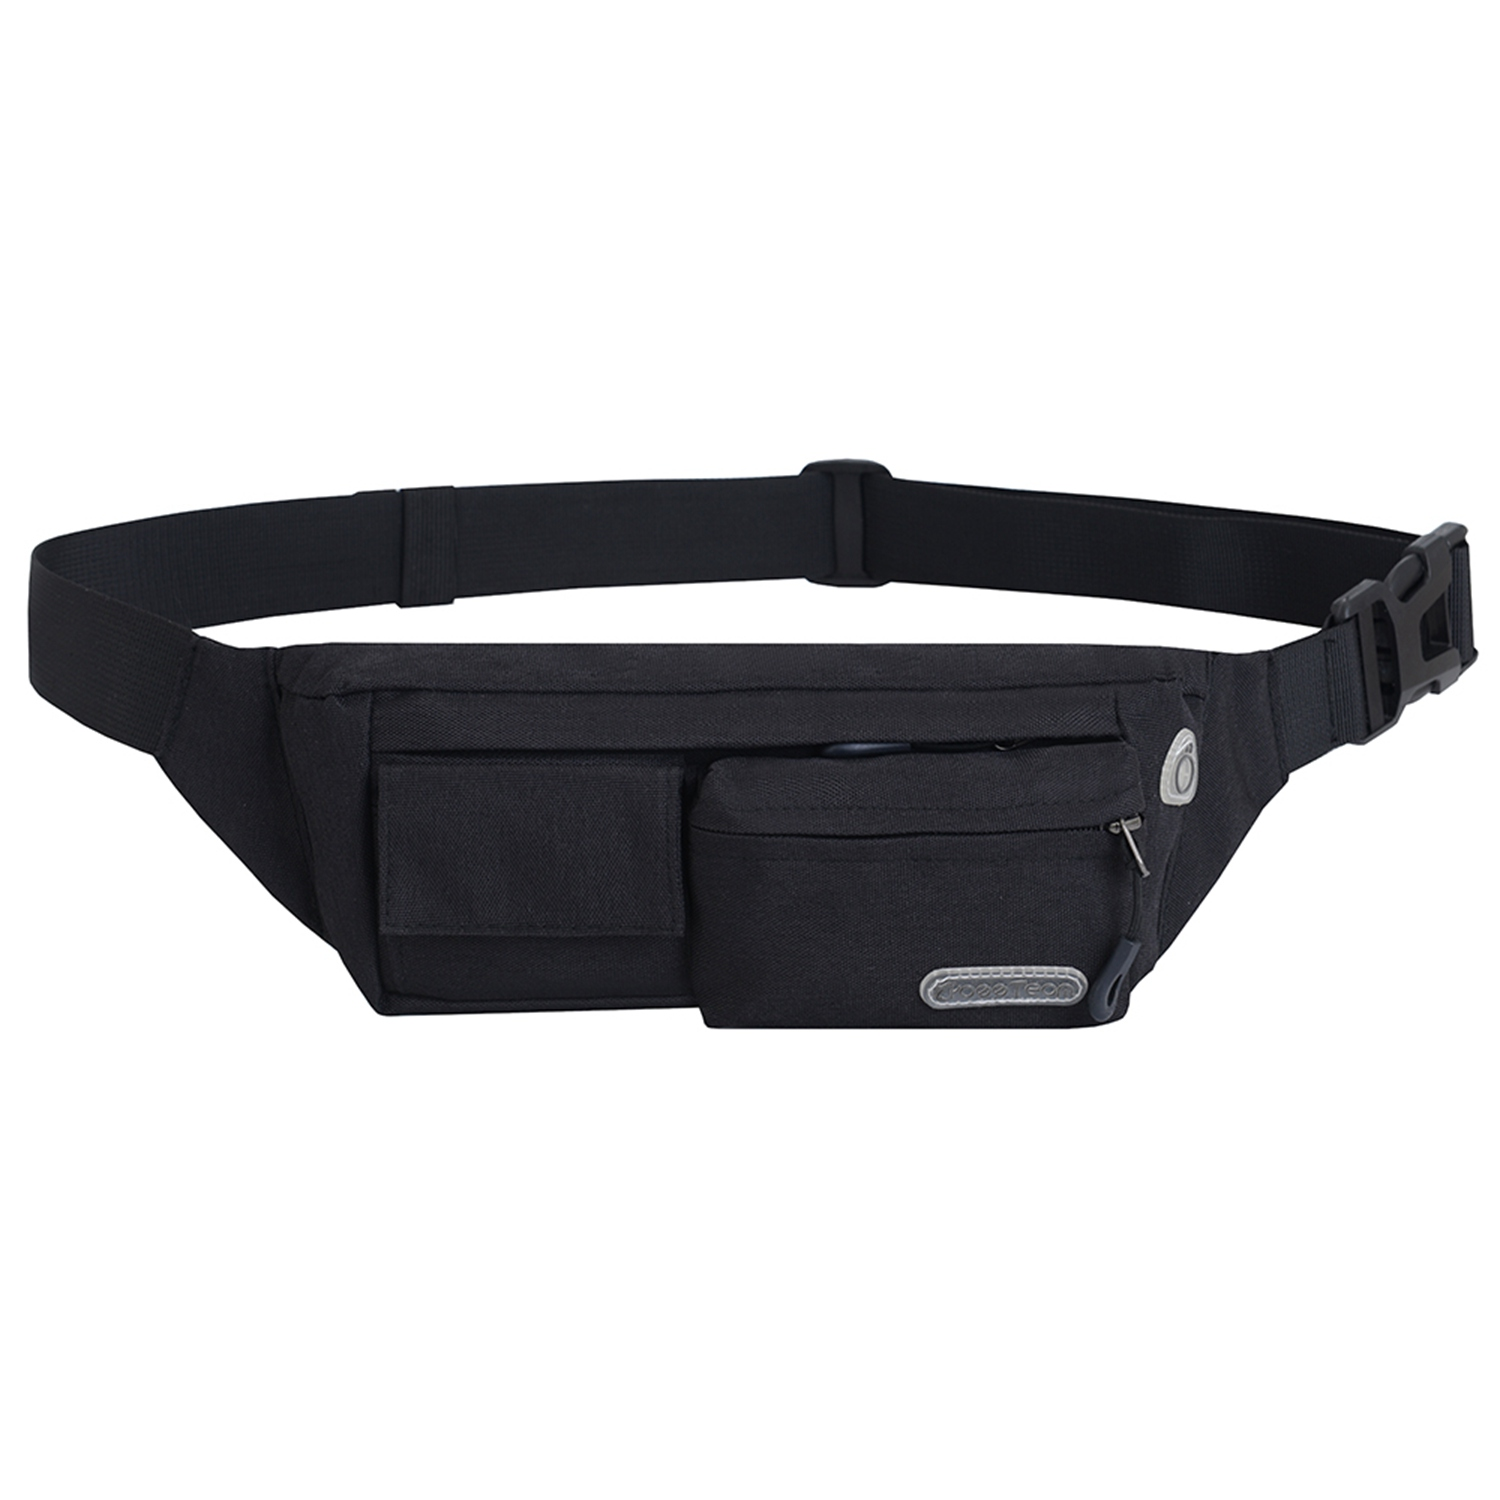 FGGS-Free Knight Unisex Sport Waist Bag Jogging Running Bag Cycling Waist Pack Waterproof Waist Belt Pack Phone Bag Outdoor Po